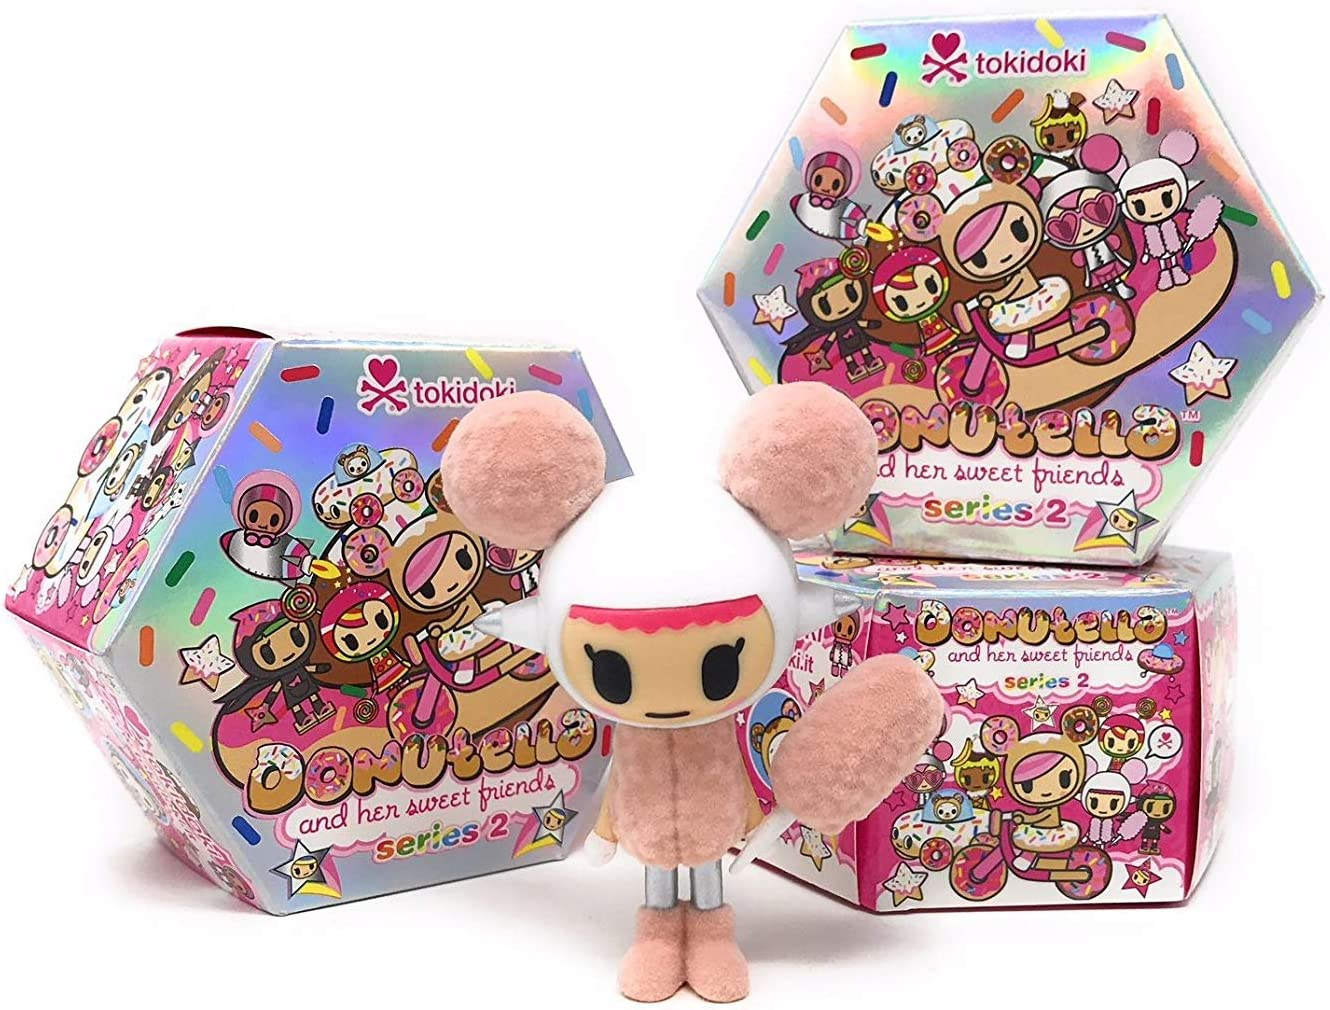 Tokidoki  Donutella series 2   X 3 BLIND BOXES